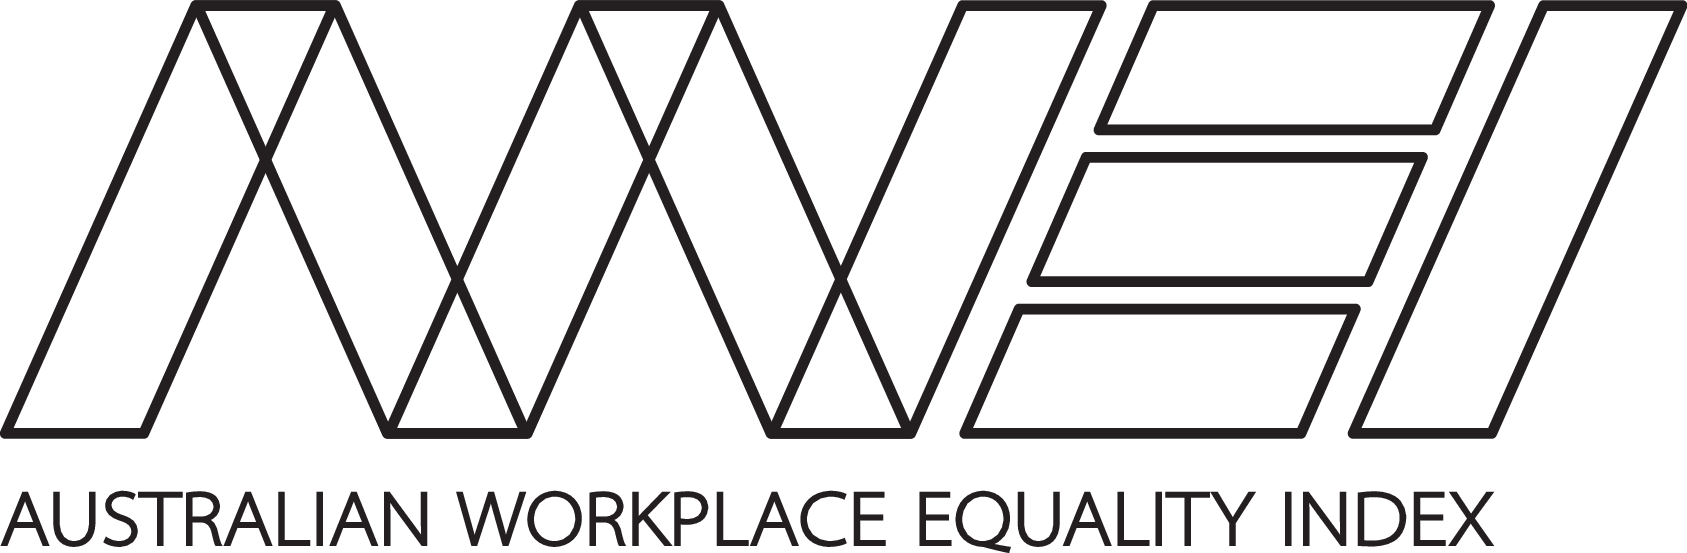 Australian Workplace Equality Index